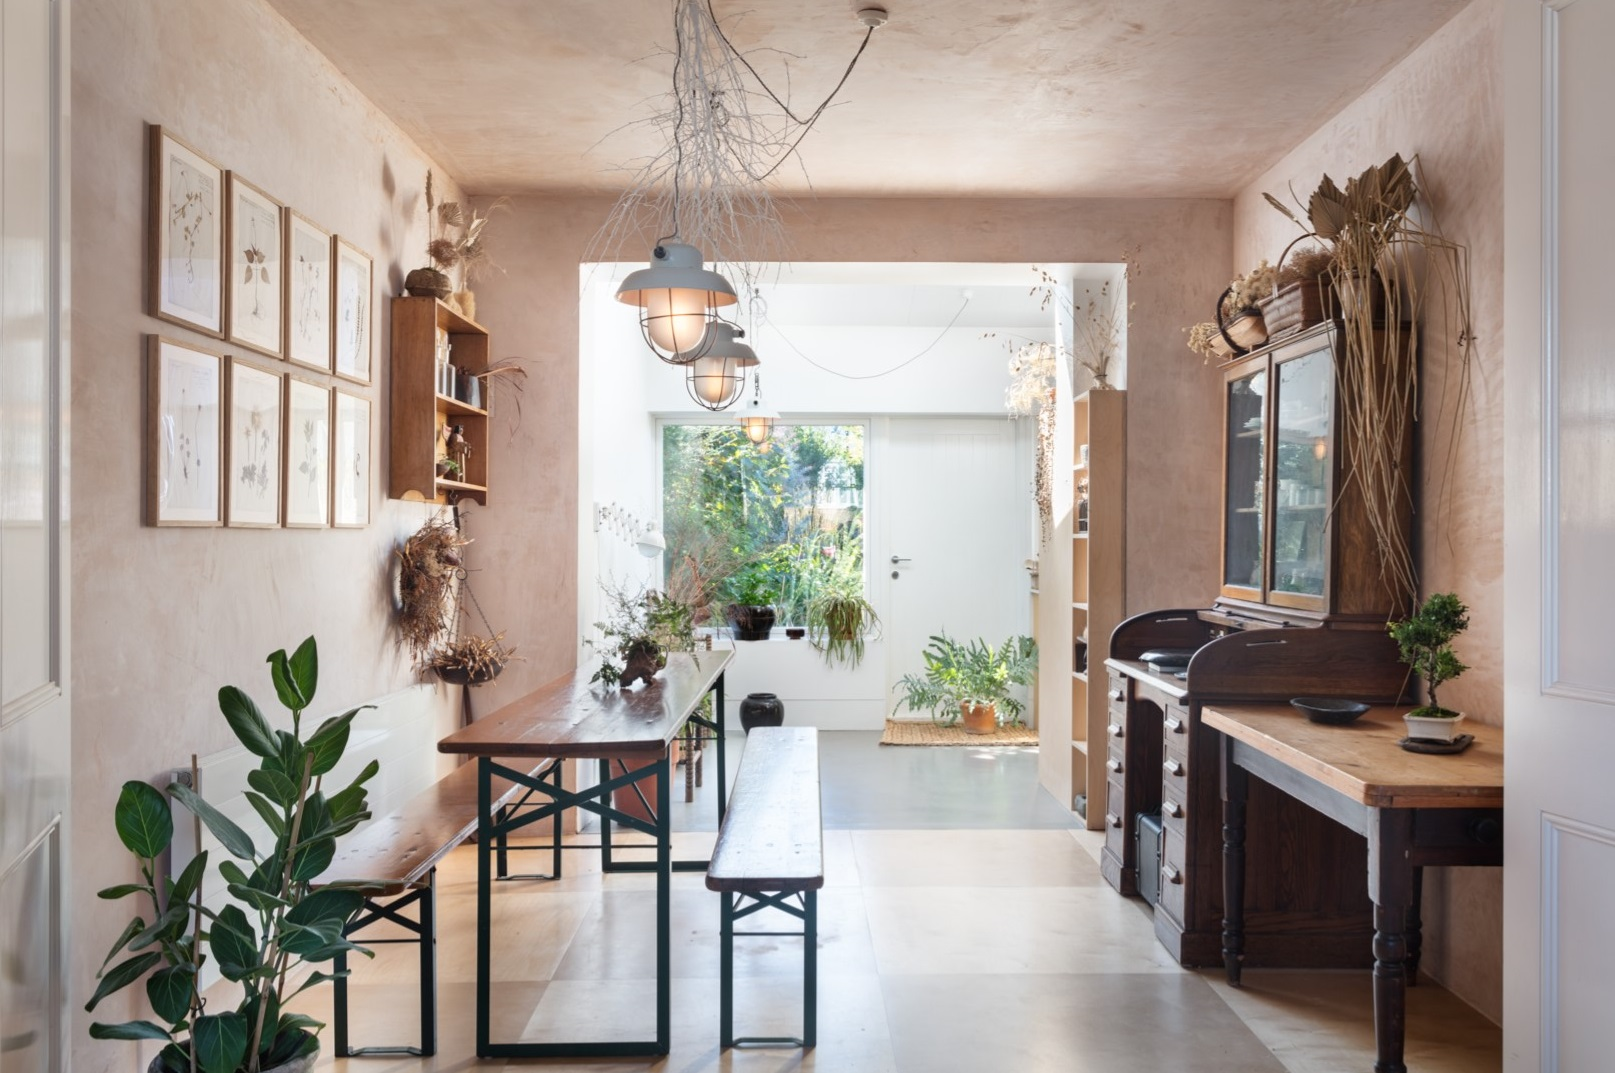 Five Steps To Bring The Japanese Philosophy Of Wabi Sabi Into Your Home The Joy Of Plants